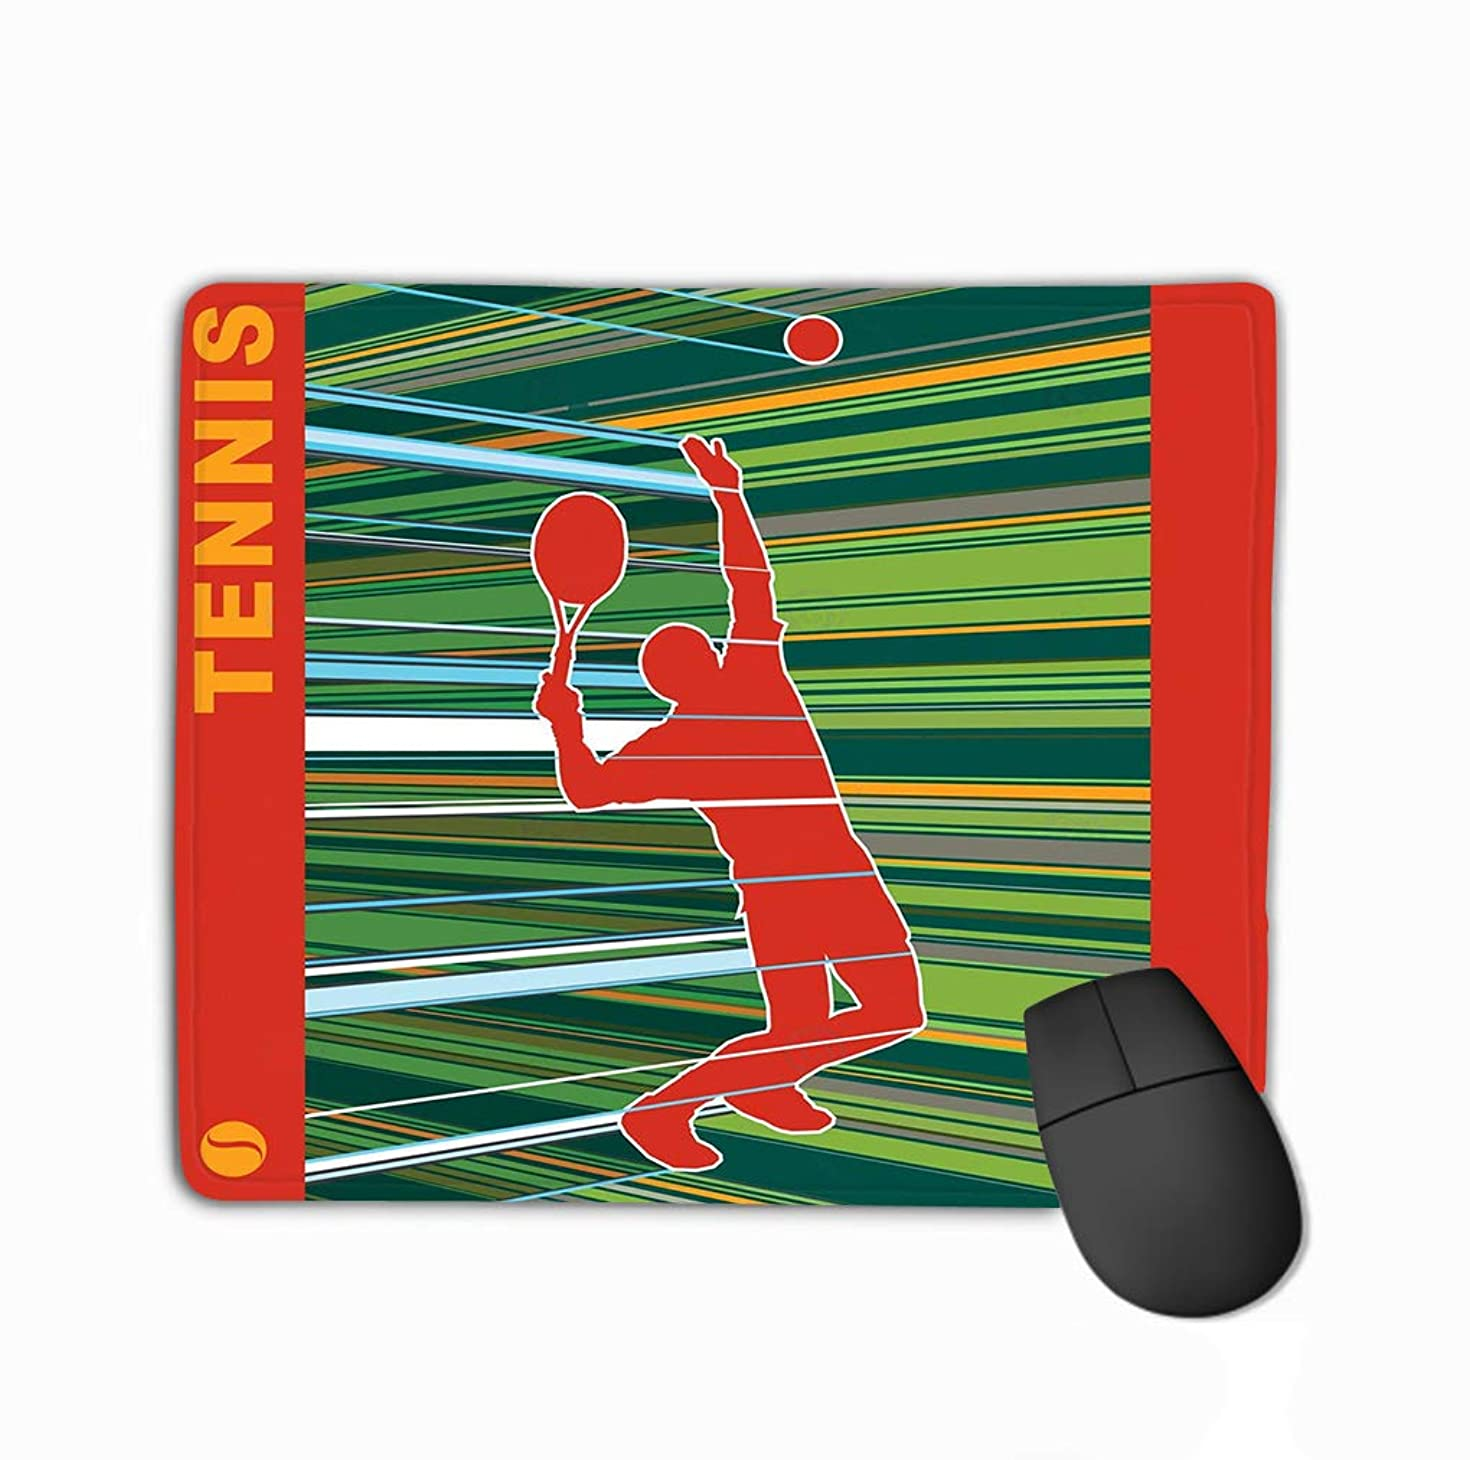 Mouse Pad Tennis Server Happy Painting Sports Rectangle Rubber Mousepad 11.81 X 9.84 Inch